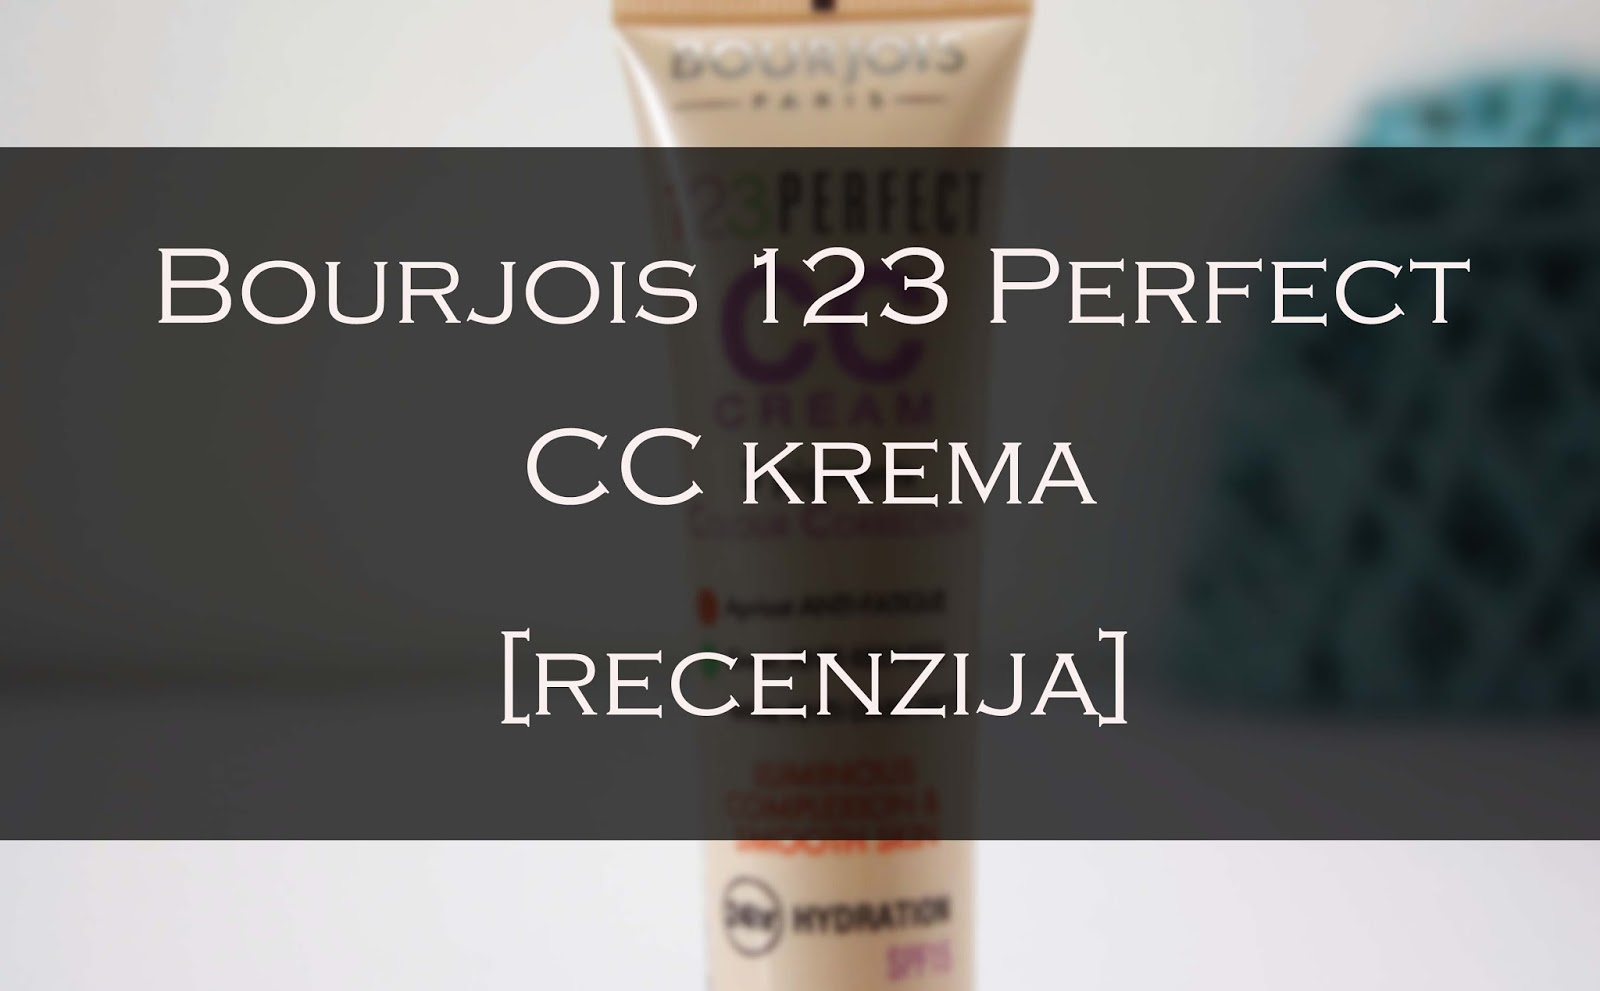 bourjois 123 perfect cc krema recenzija le makeup freak. Black Bedroom Furniture Sets. Home Design Ideas